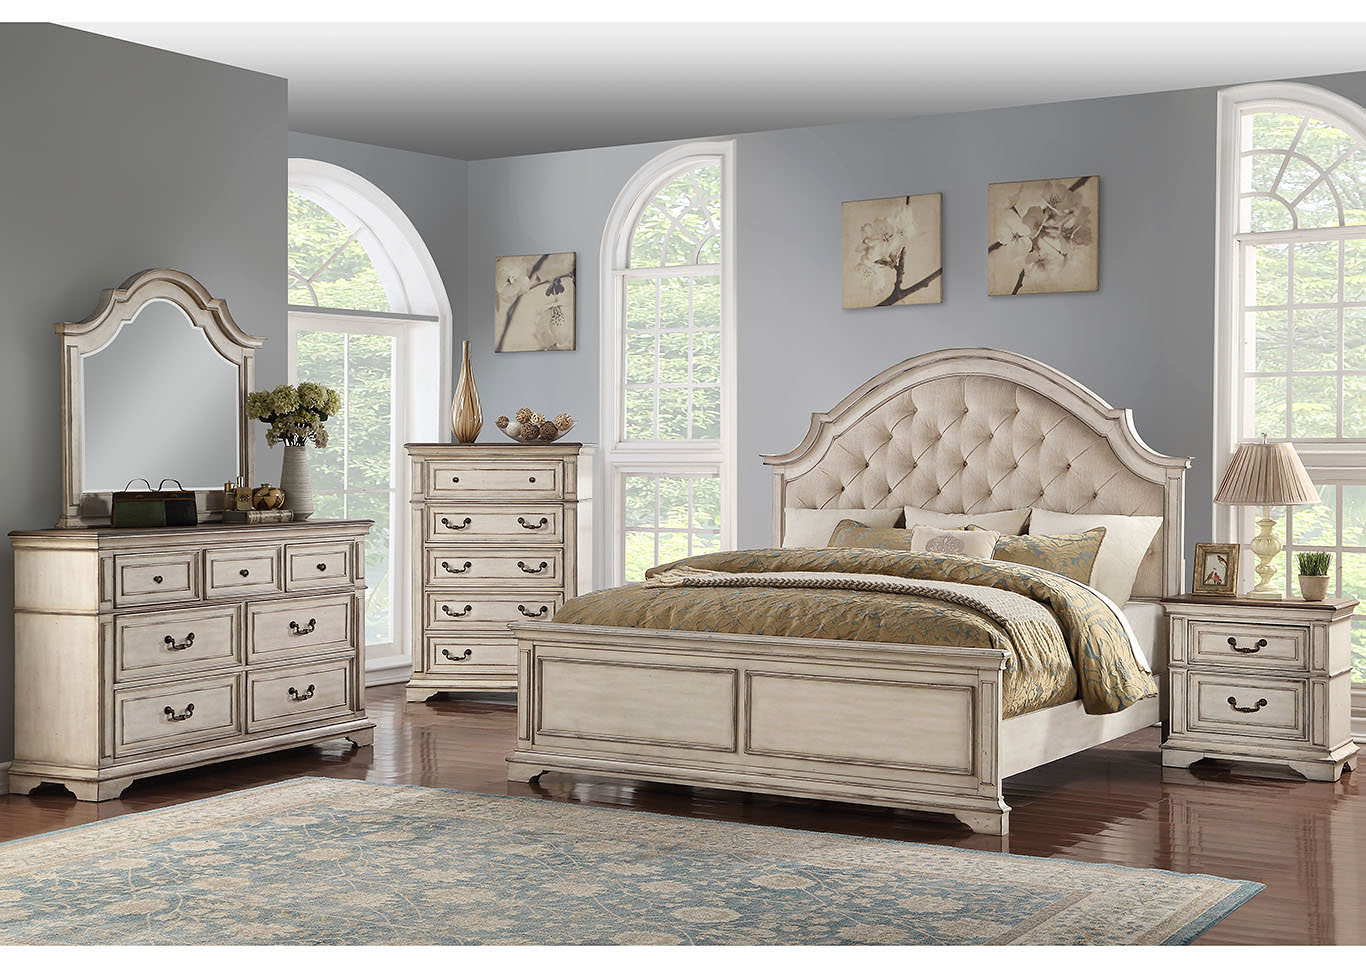 Anastasia Antique White Eastern King Upholstered Panel Bed w/Dresser And Mirror,New Classic